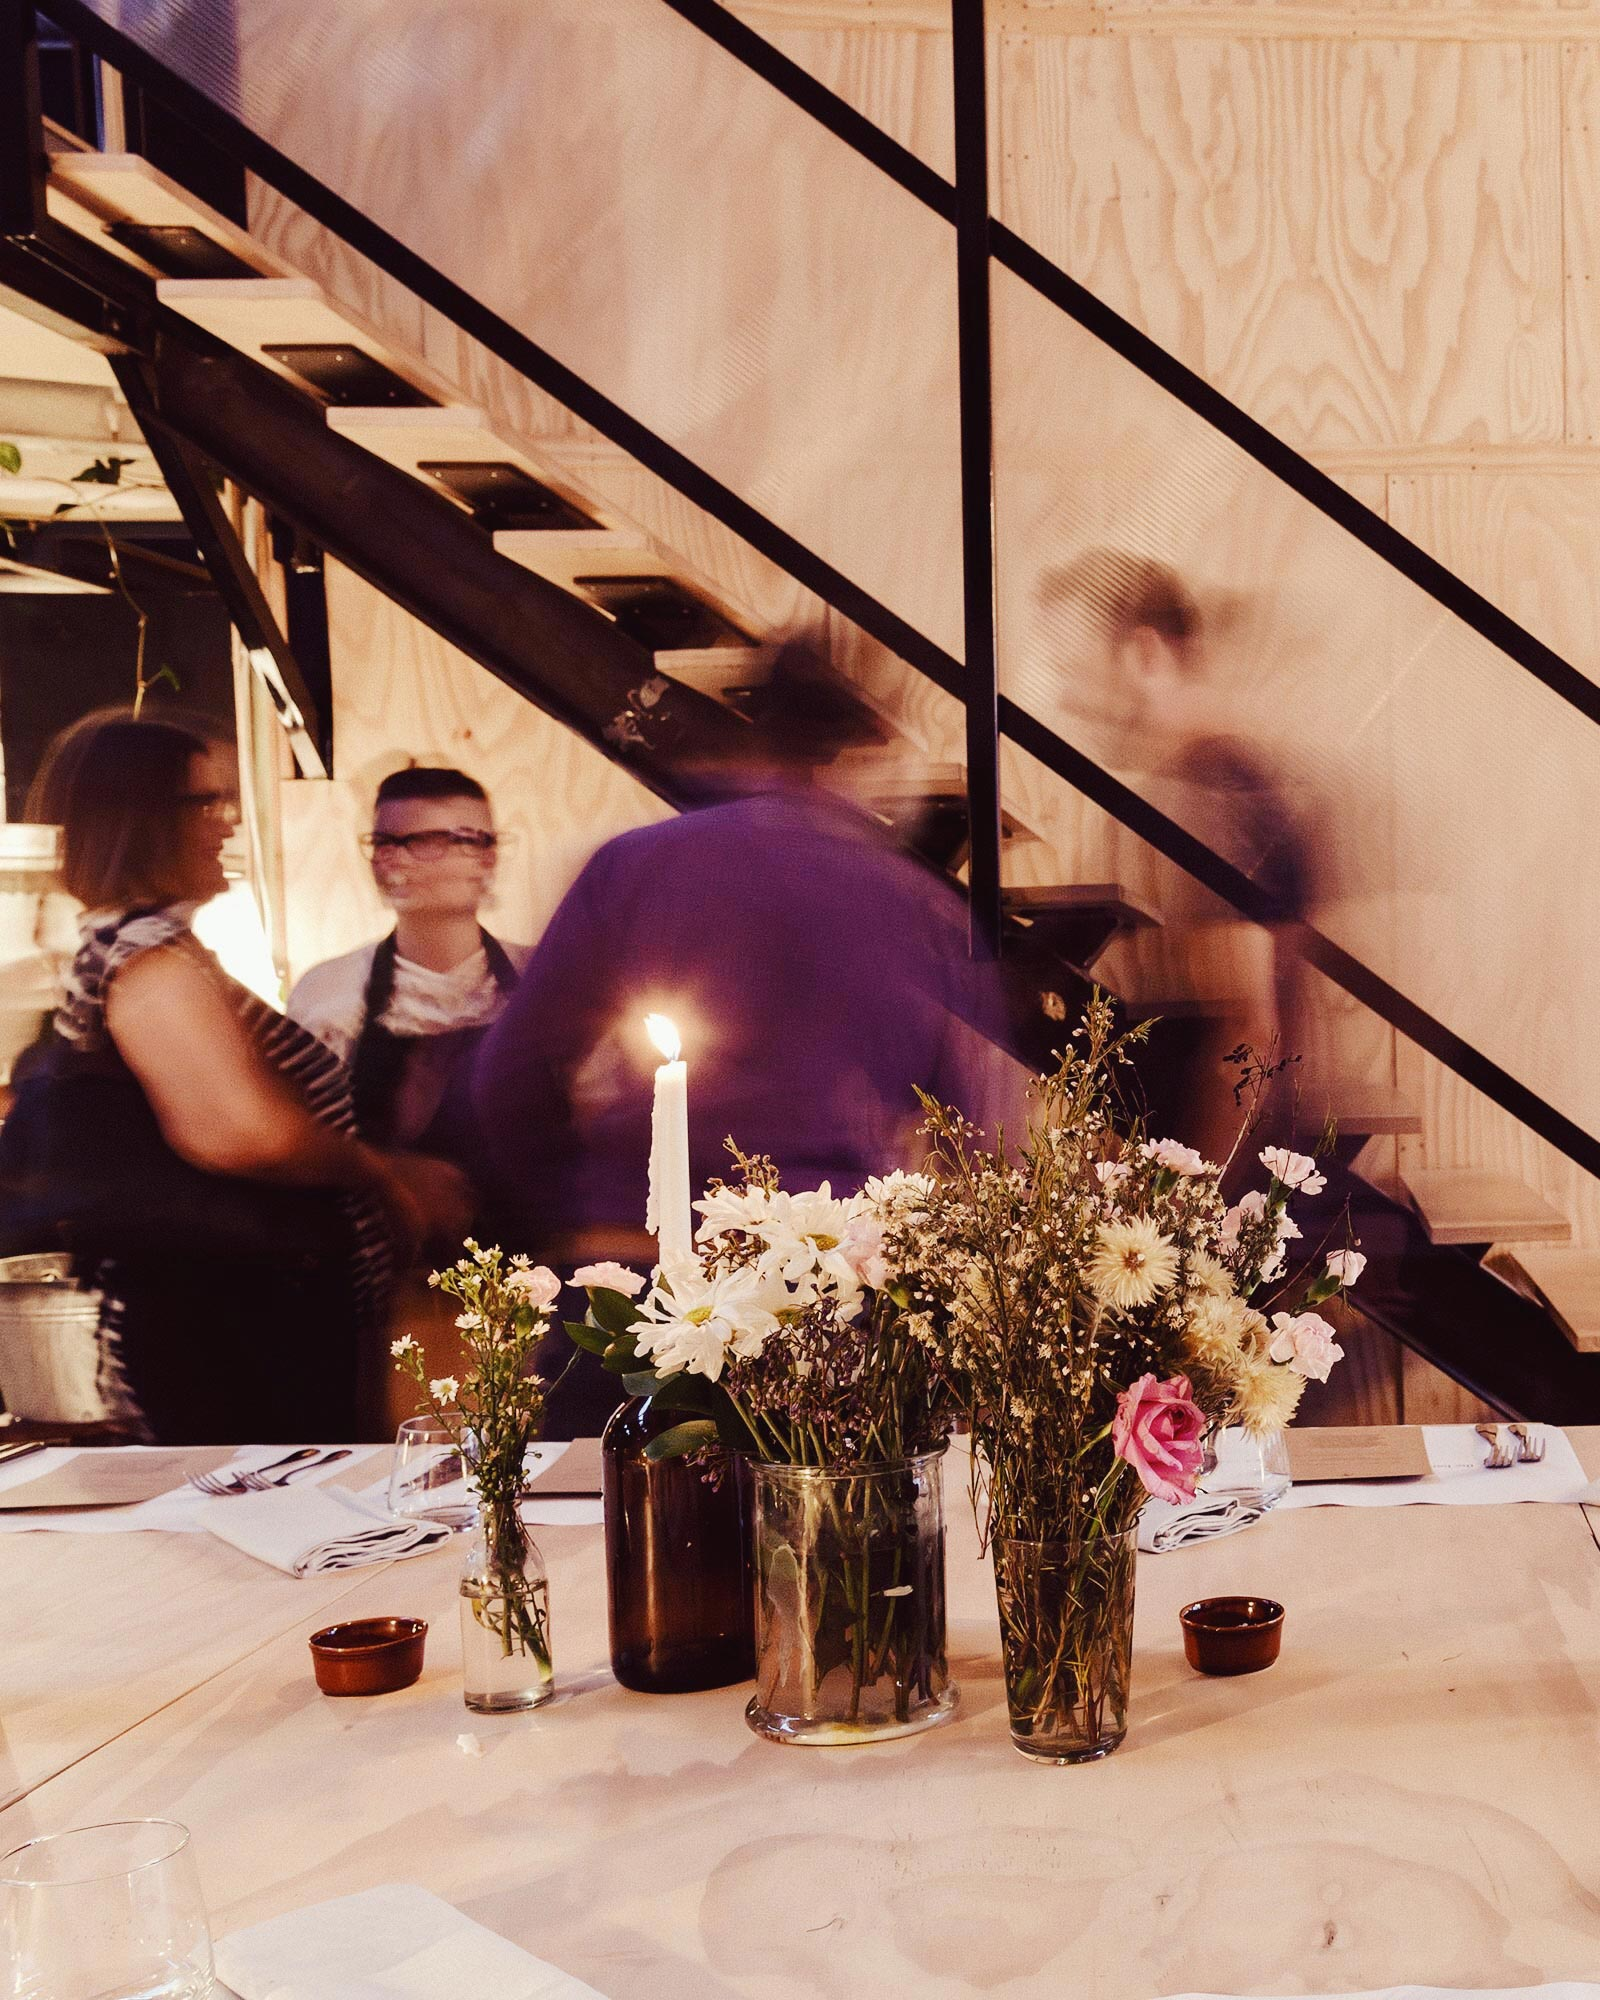 Picture of people standing in front of stairs at supper club function at Colab 4010